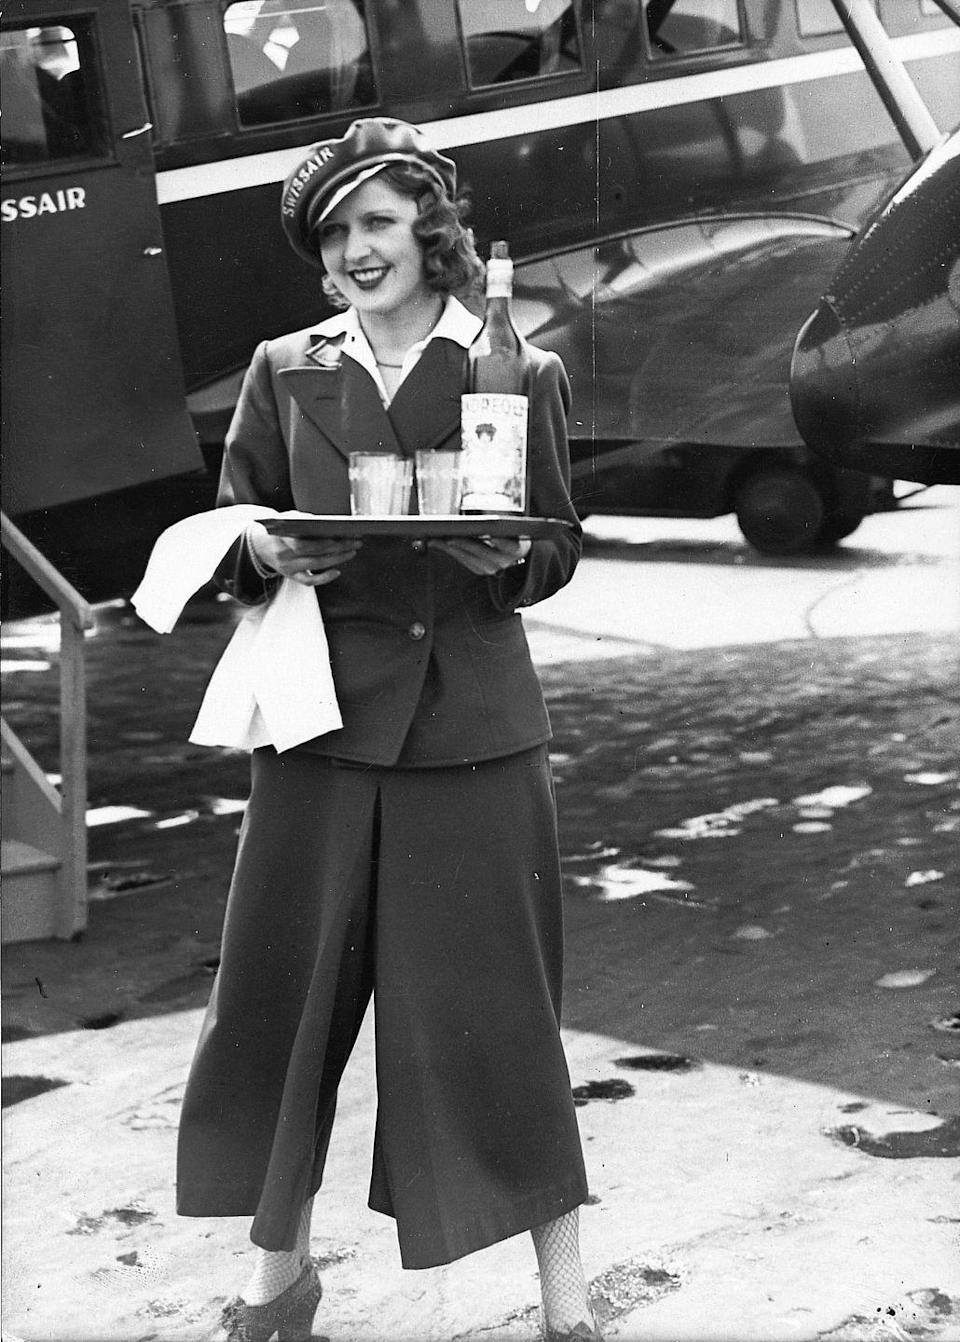 <p>In Europe, Candor Airlines was the first to employ a stewardess. A Swissair stewardess stands in front of a Condor aircraft at Tempelhof Airport in Berlin in 1934.</p>